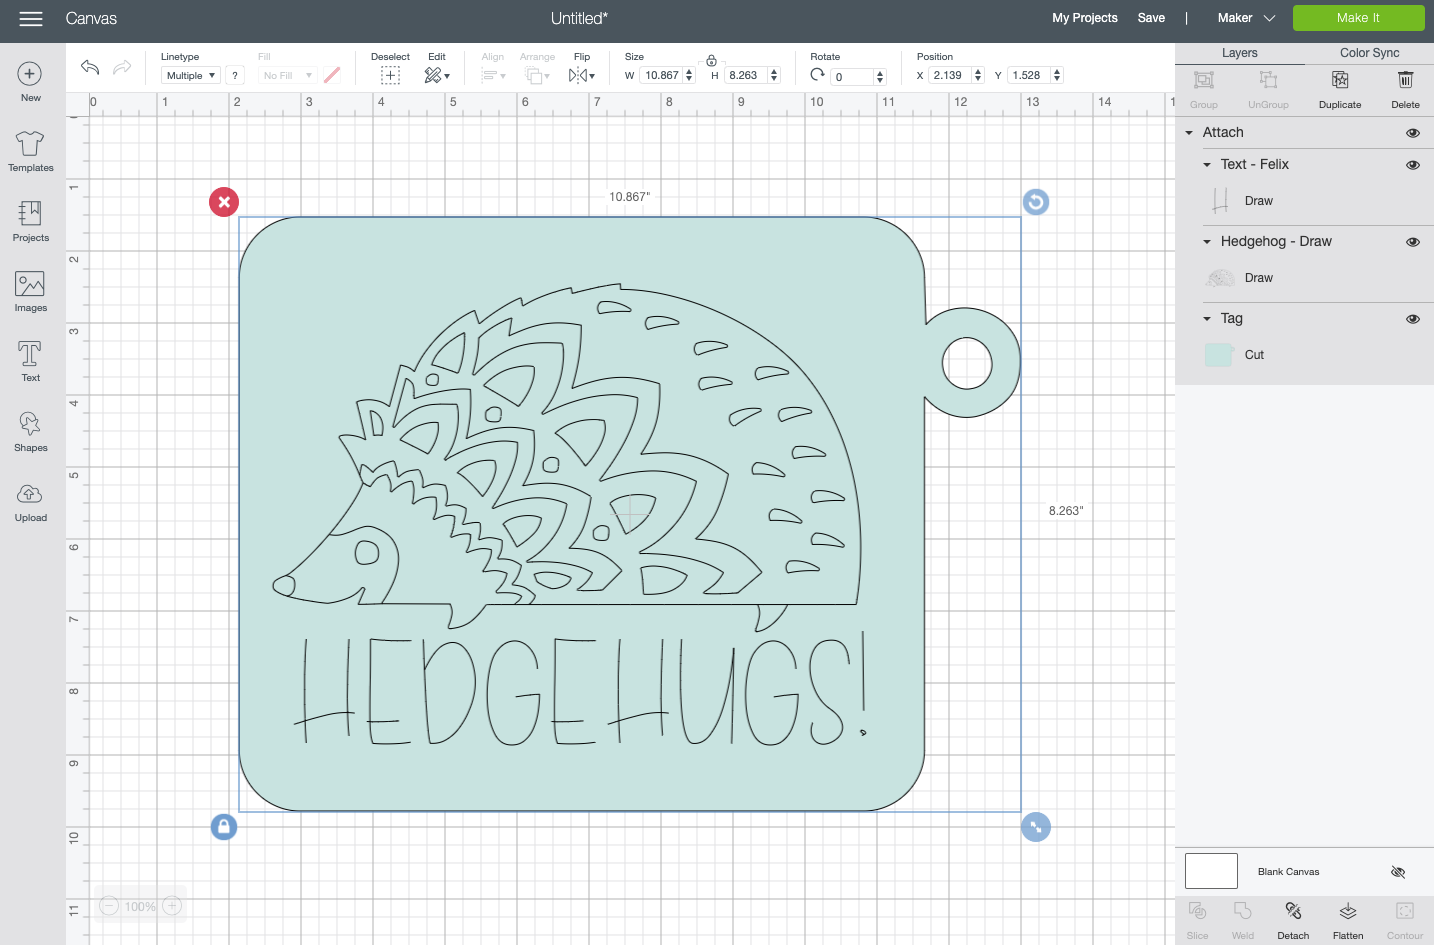 Cricut Design Space: Draw image attached to blue tag